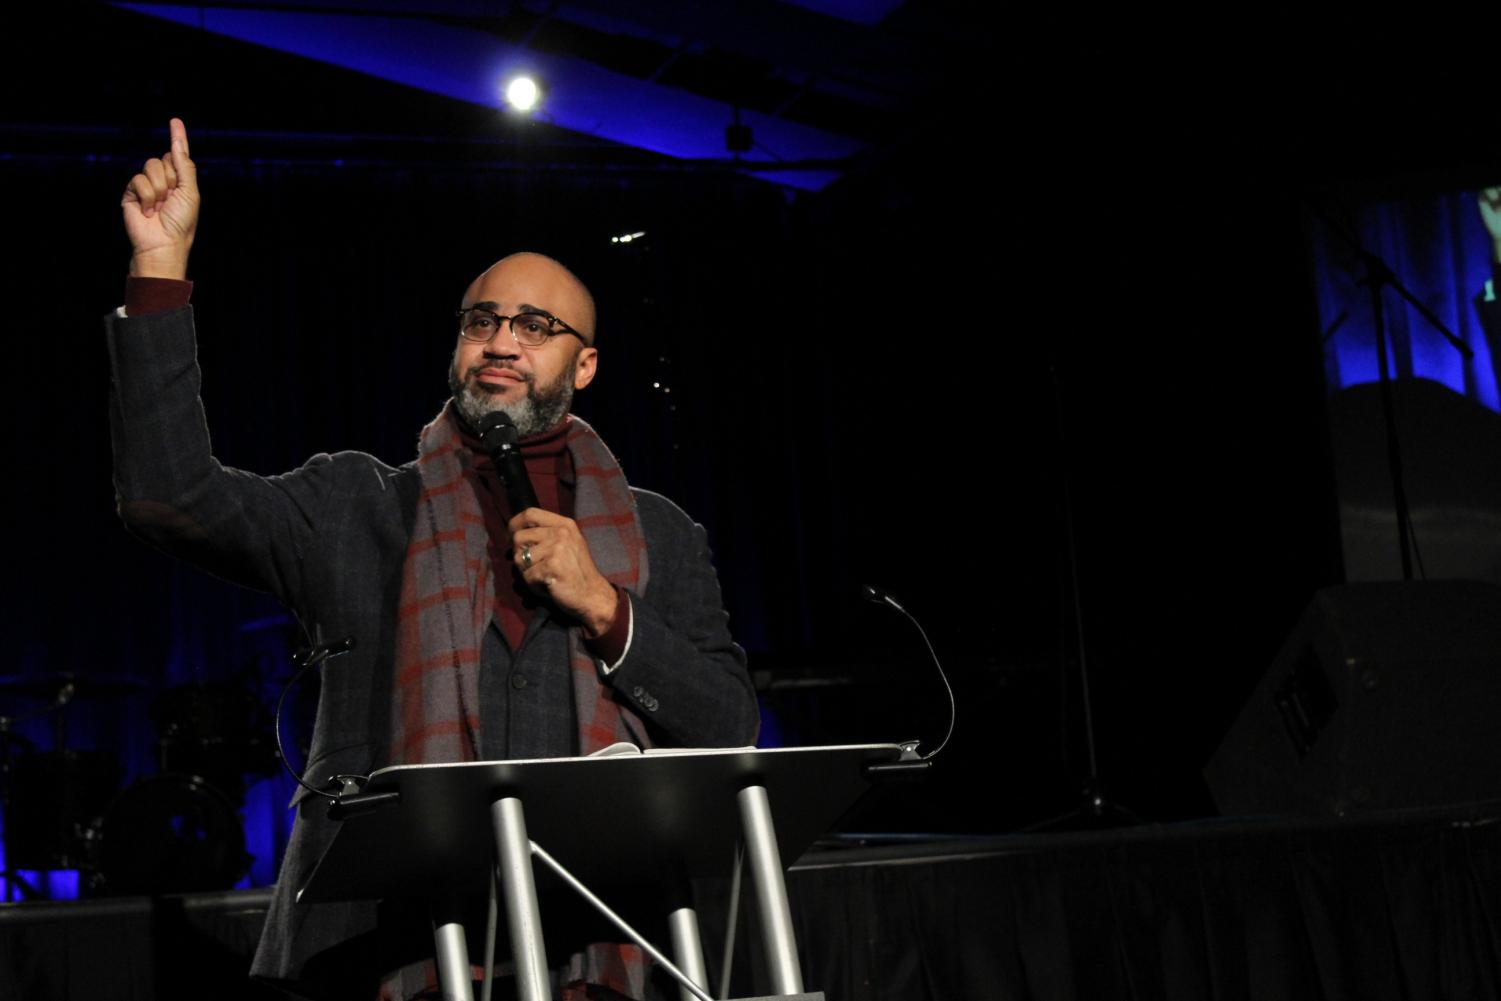 Pastor Albert Tate speaks on racial diversity and change at the 2020 MLK chapel.